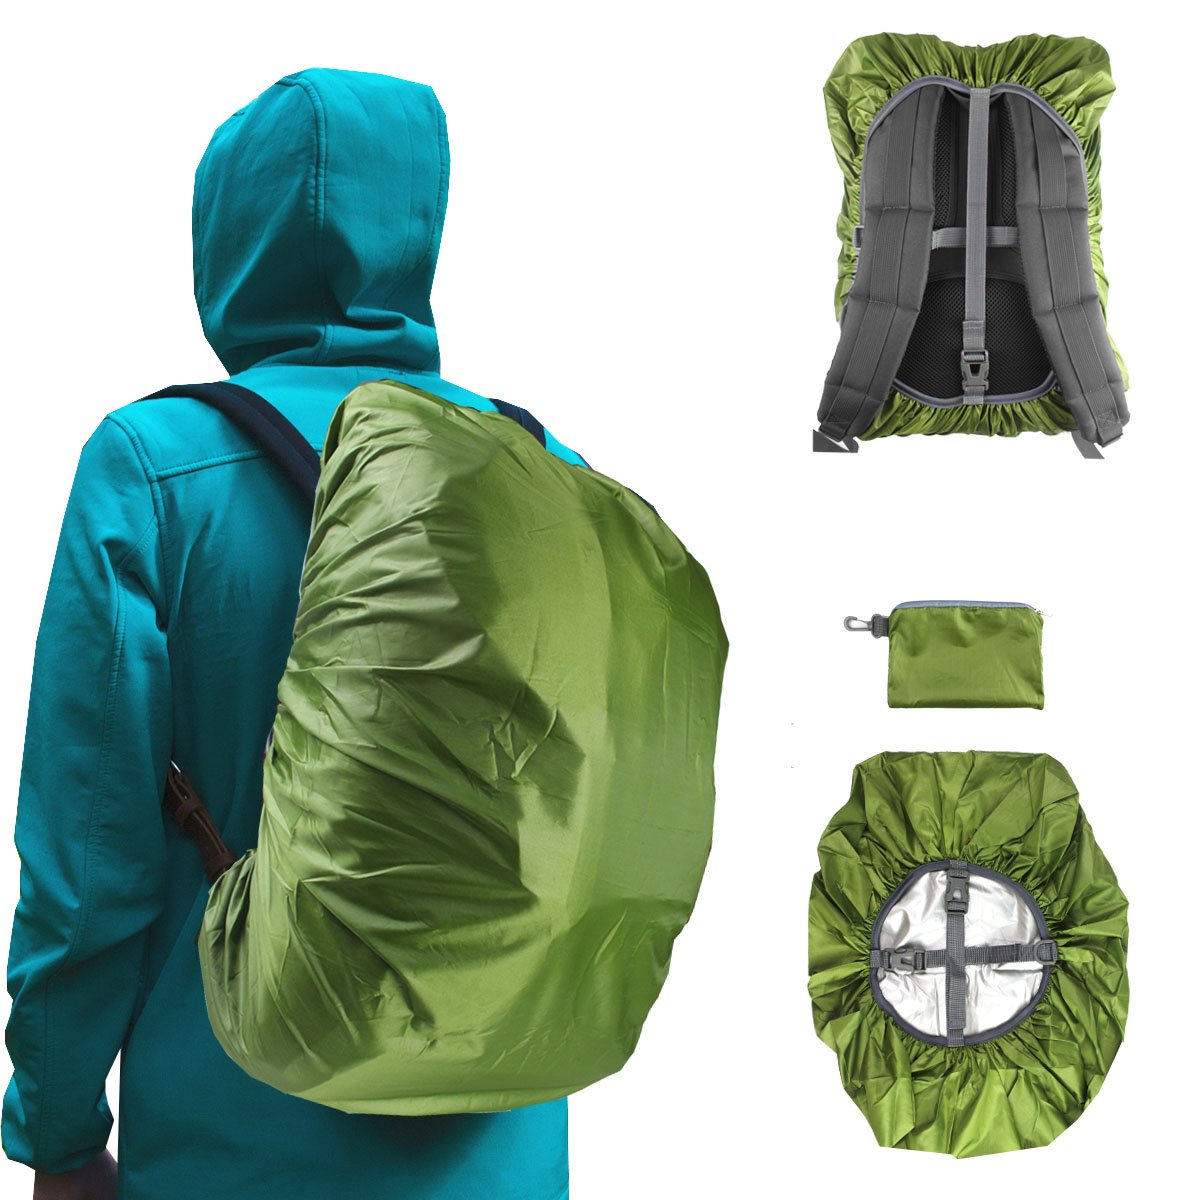 Frelaxy Waterproof Backpack Rain Cover (15-90L), Upgraded Vertical Buckle Strap & Silver Coated, Rainproof Storage Pouch Included, Perfect for Hiking, Camping (Army Green, S (for 15L-25L Backpack))